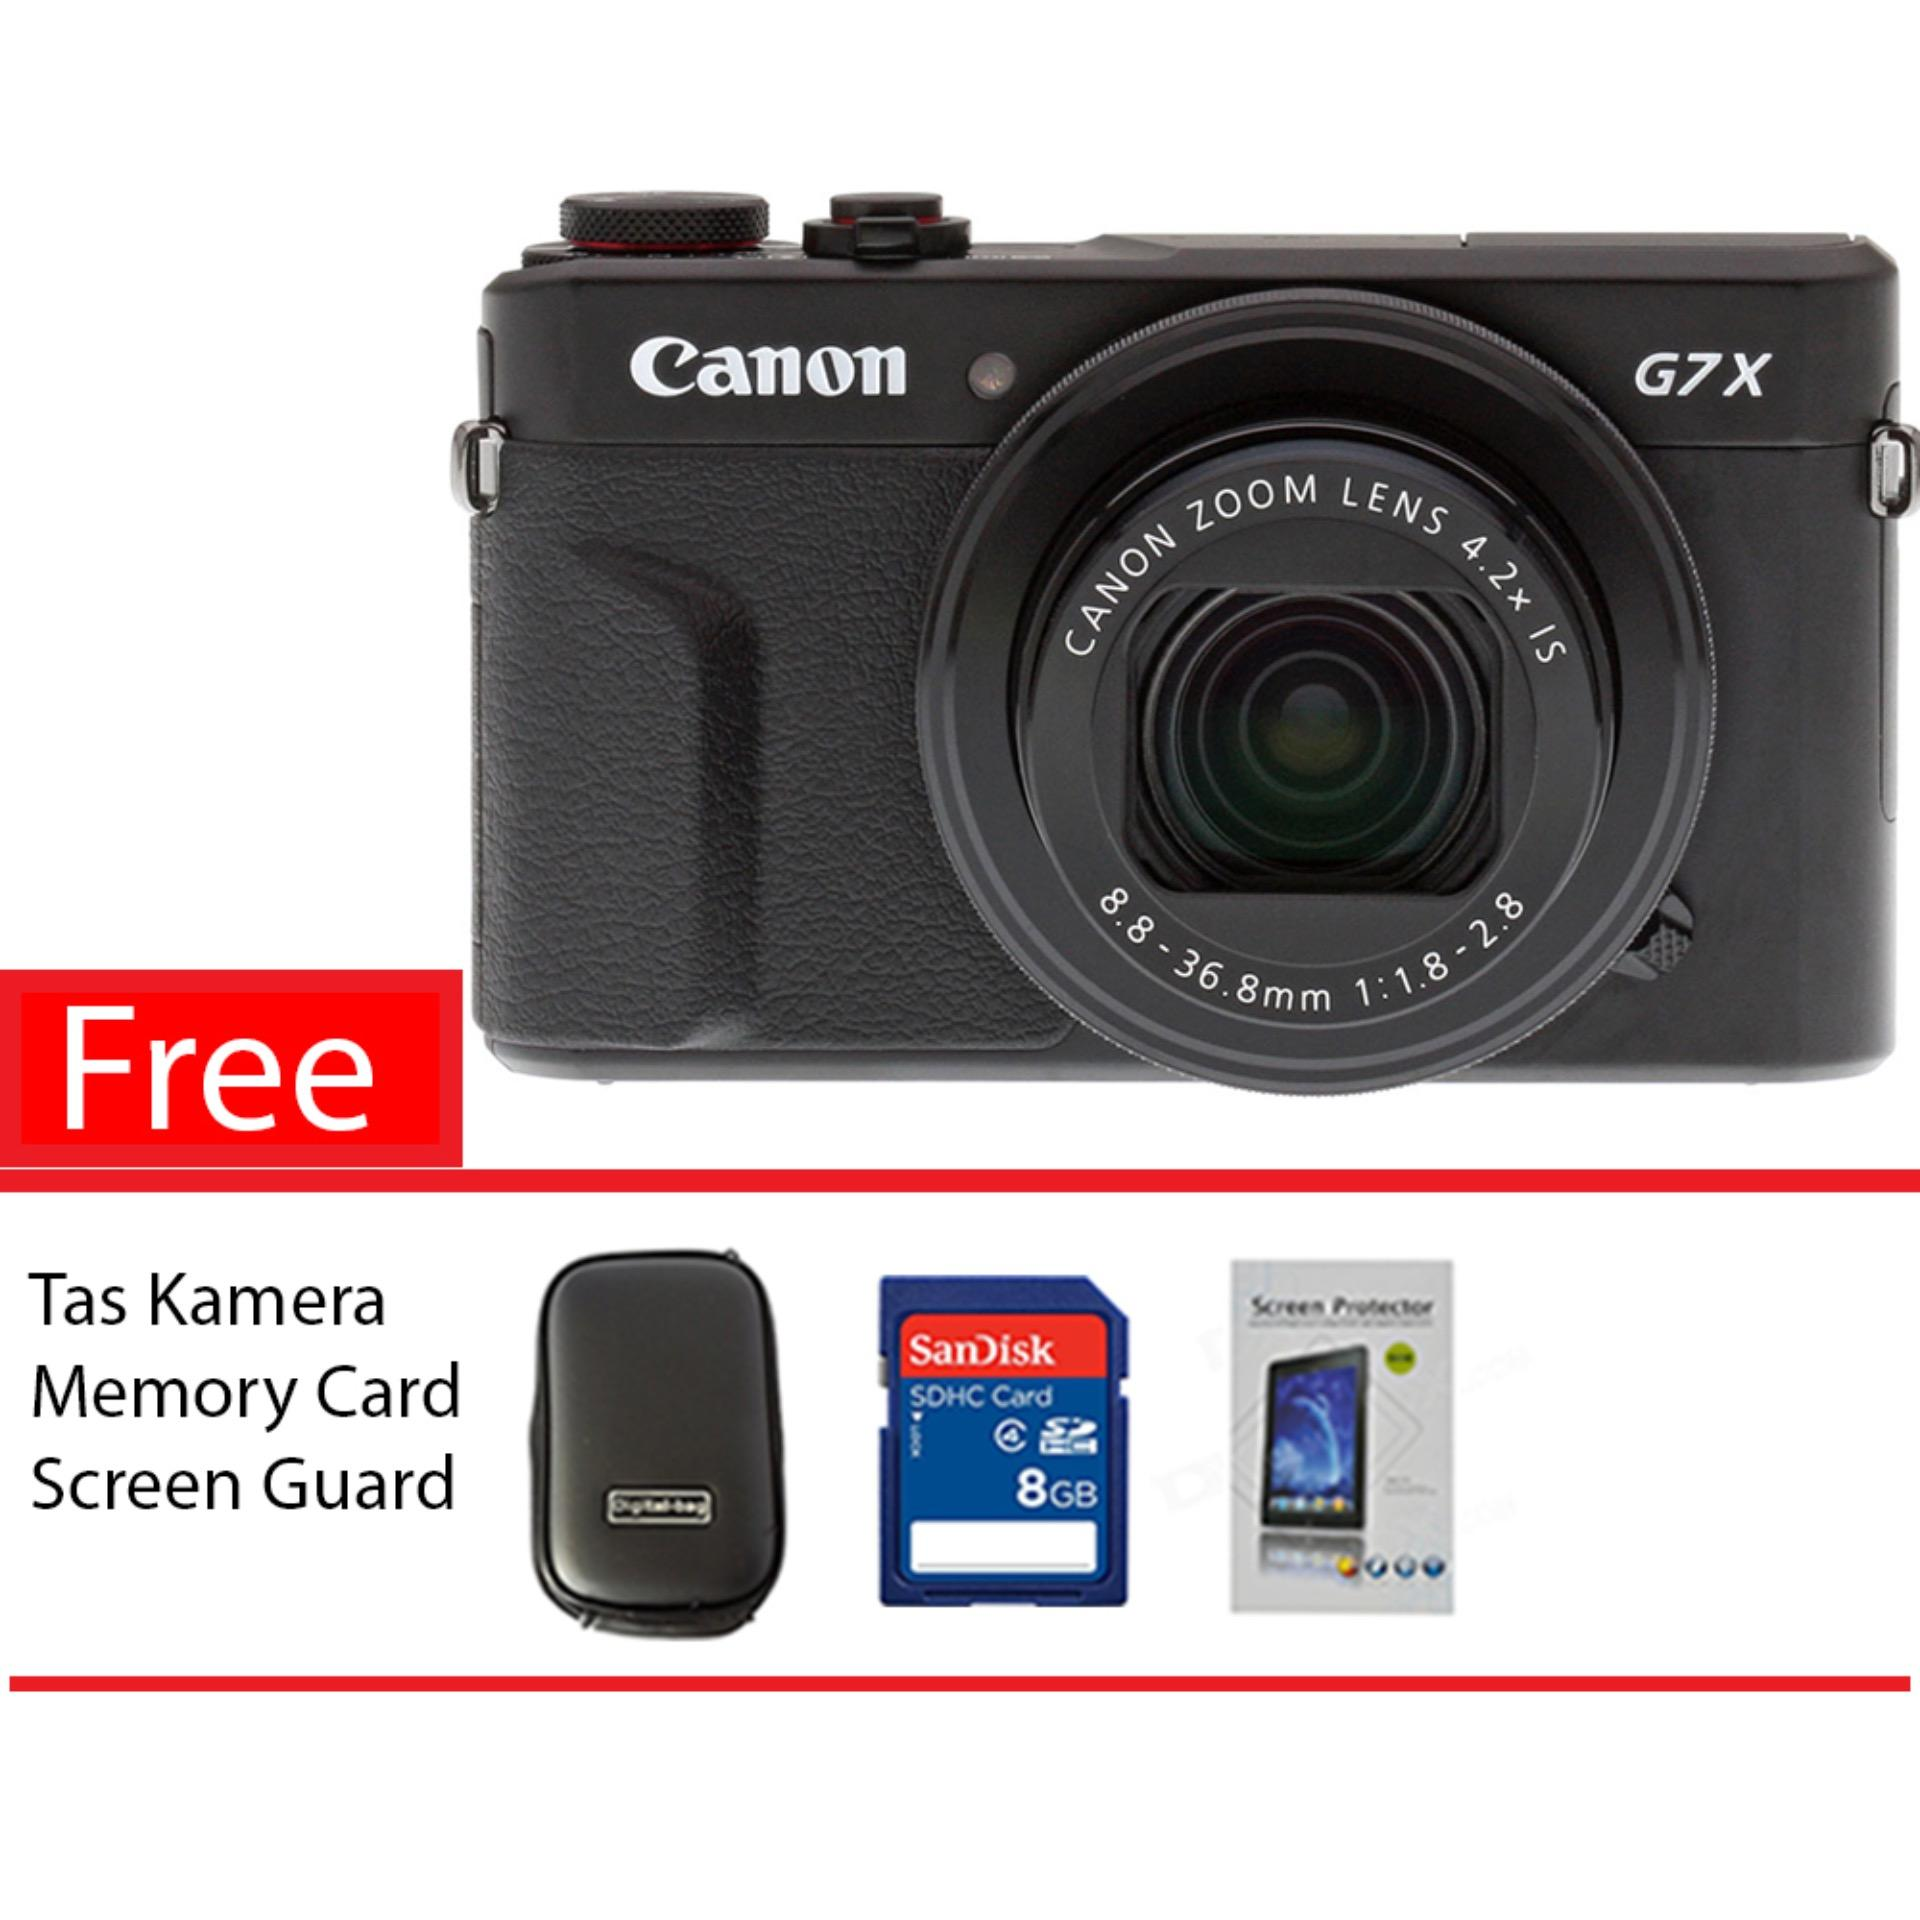 Jual Canon Powershot G7X Mark Ii 20 1Mp Digital Camera Hitam Free Memory Card Screen Guard Tas Kamera Canon Branded